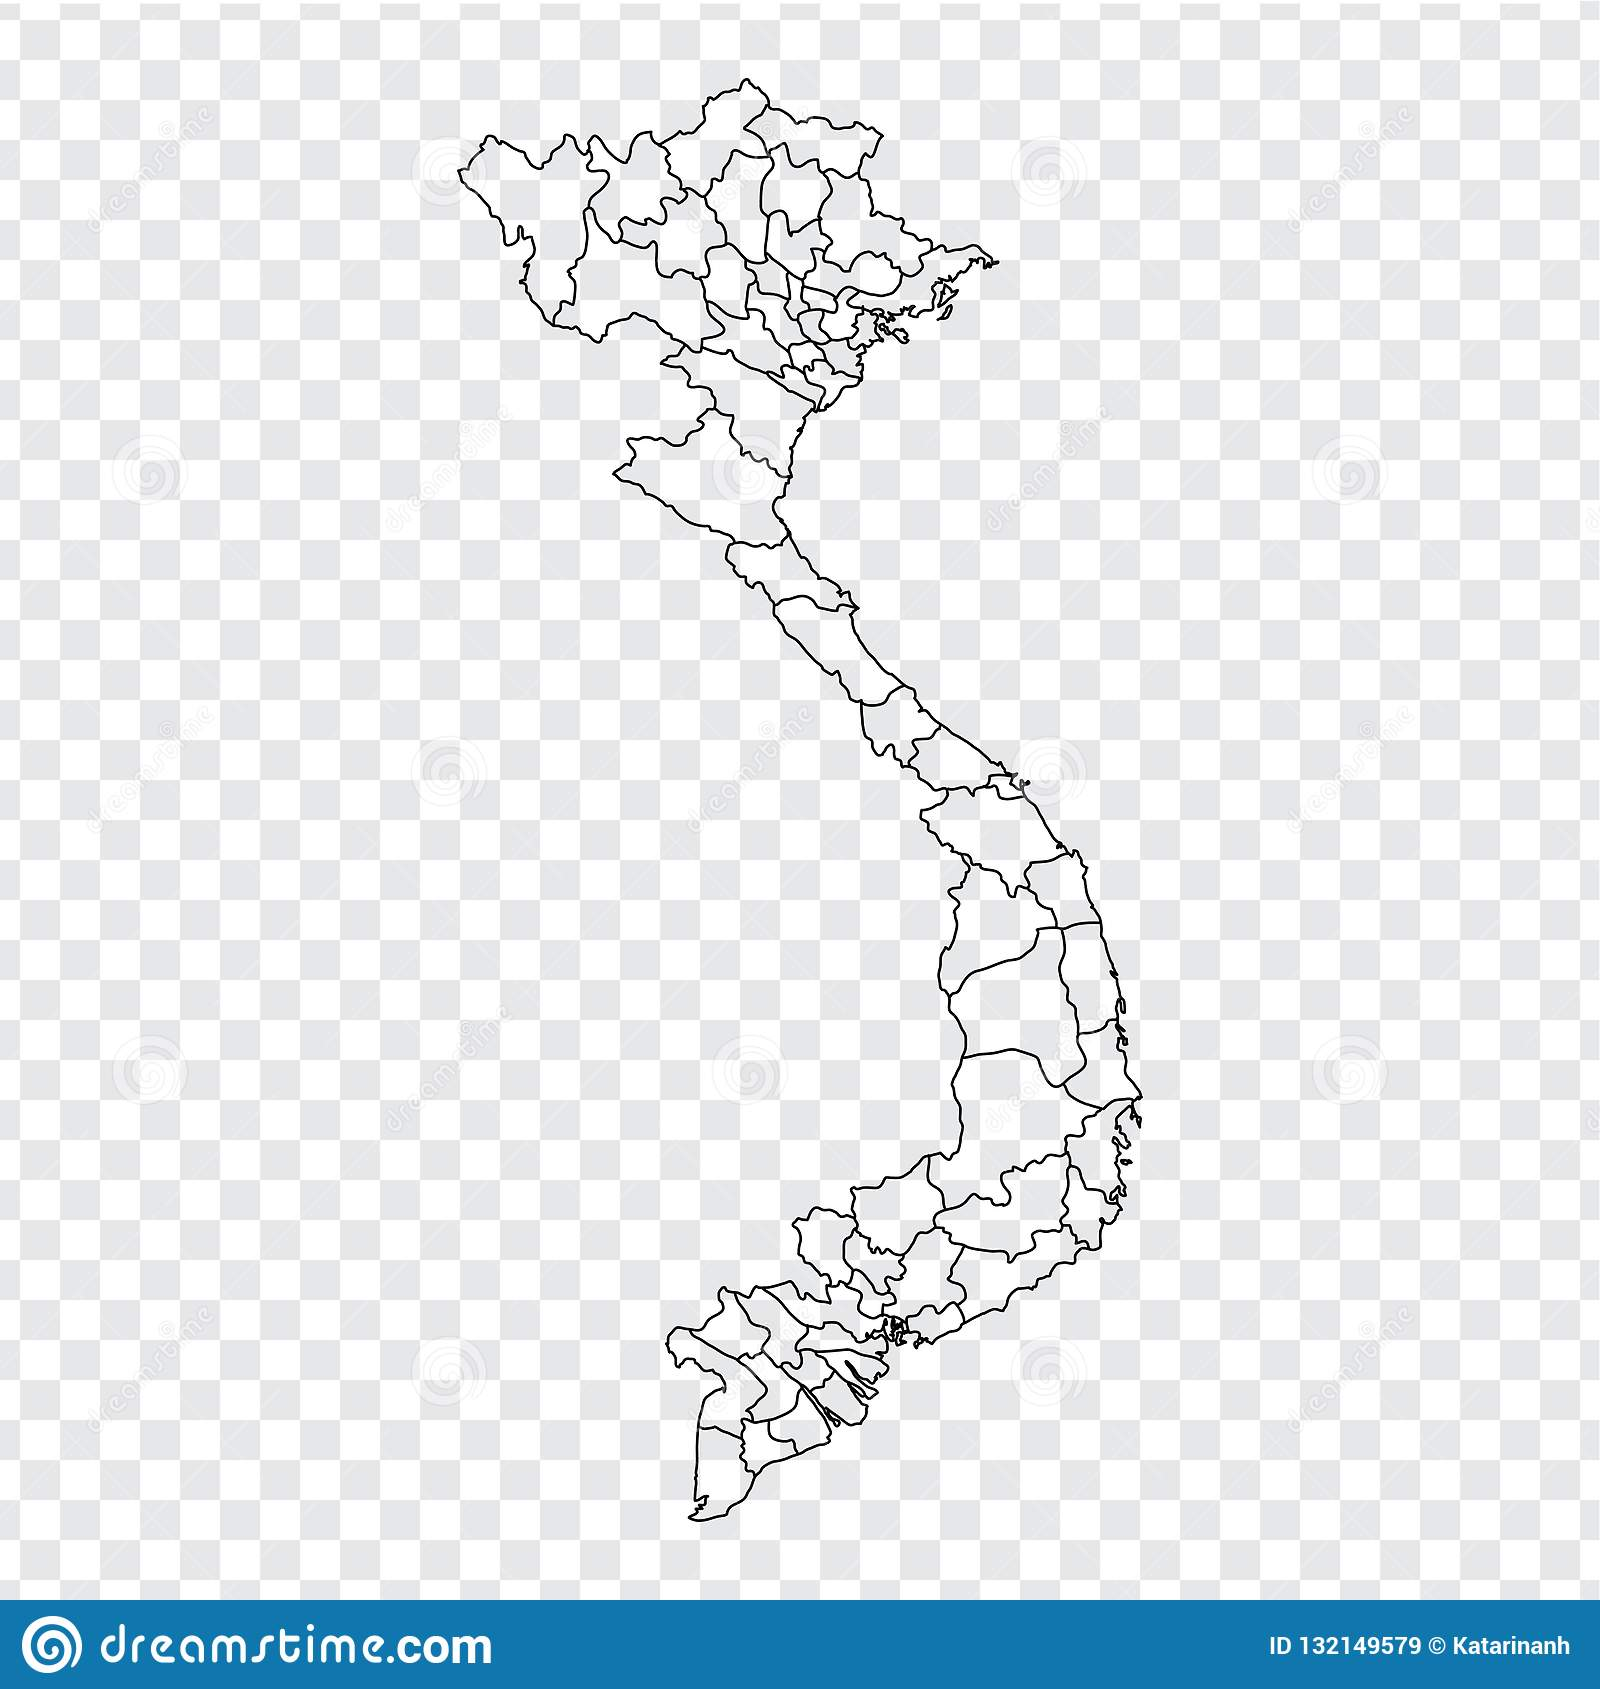 Blank Map Vietnam High Quality Map Vietnam With Provinces On Transparent Background For Your Web Site Design Logo App Ui Stock Vector Illustration Of Blank Contour 132149579